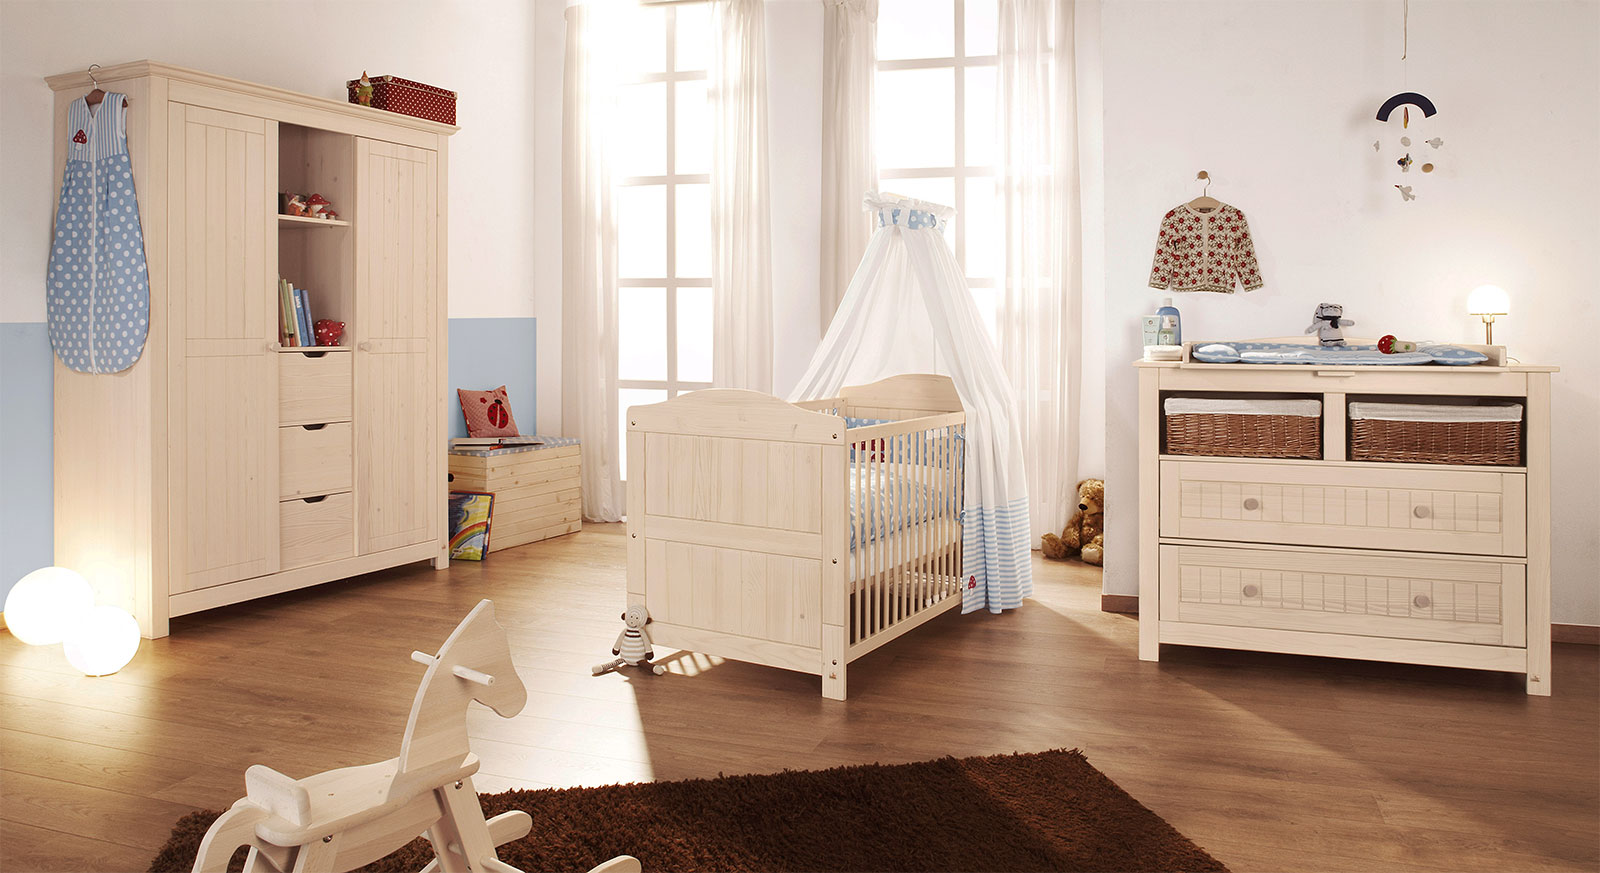 babyzimmer im wohnzimmer just another wordpress siteinspiration f r heim und innenarchitektur. Black Bedroom Furniture Sets. Home Design Ideas